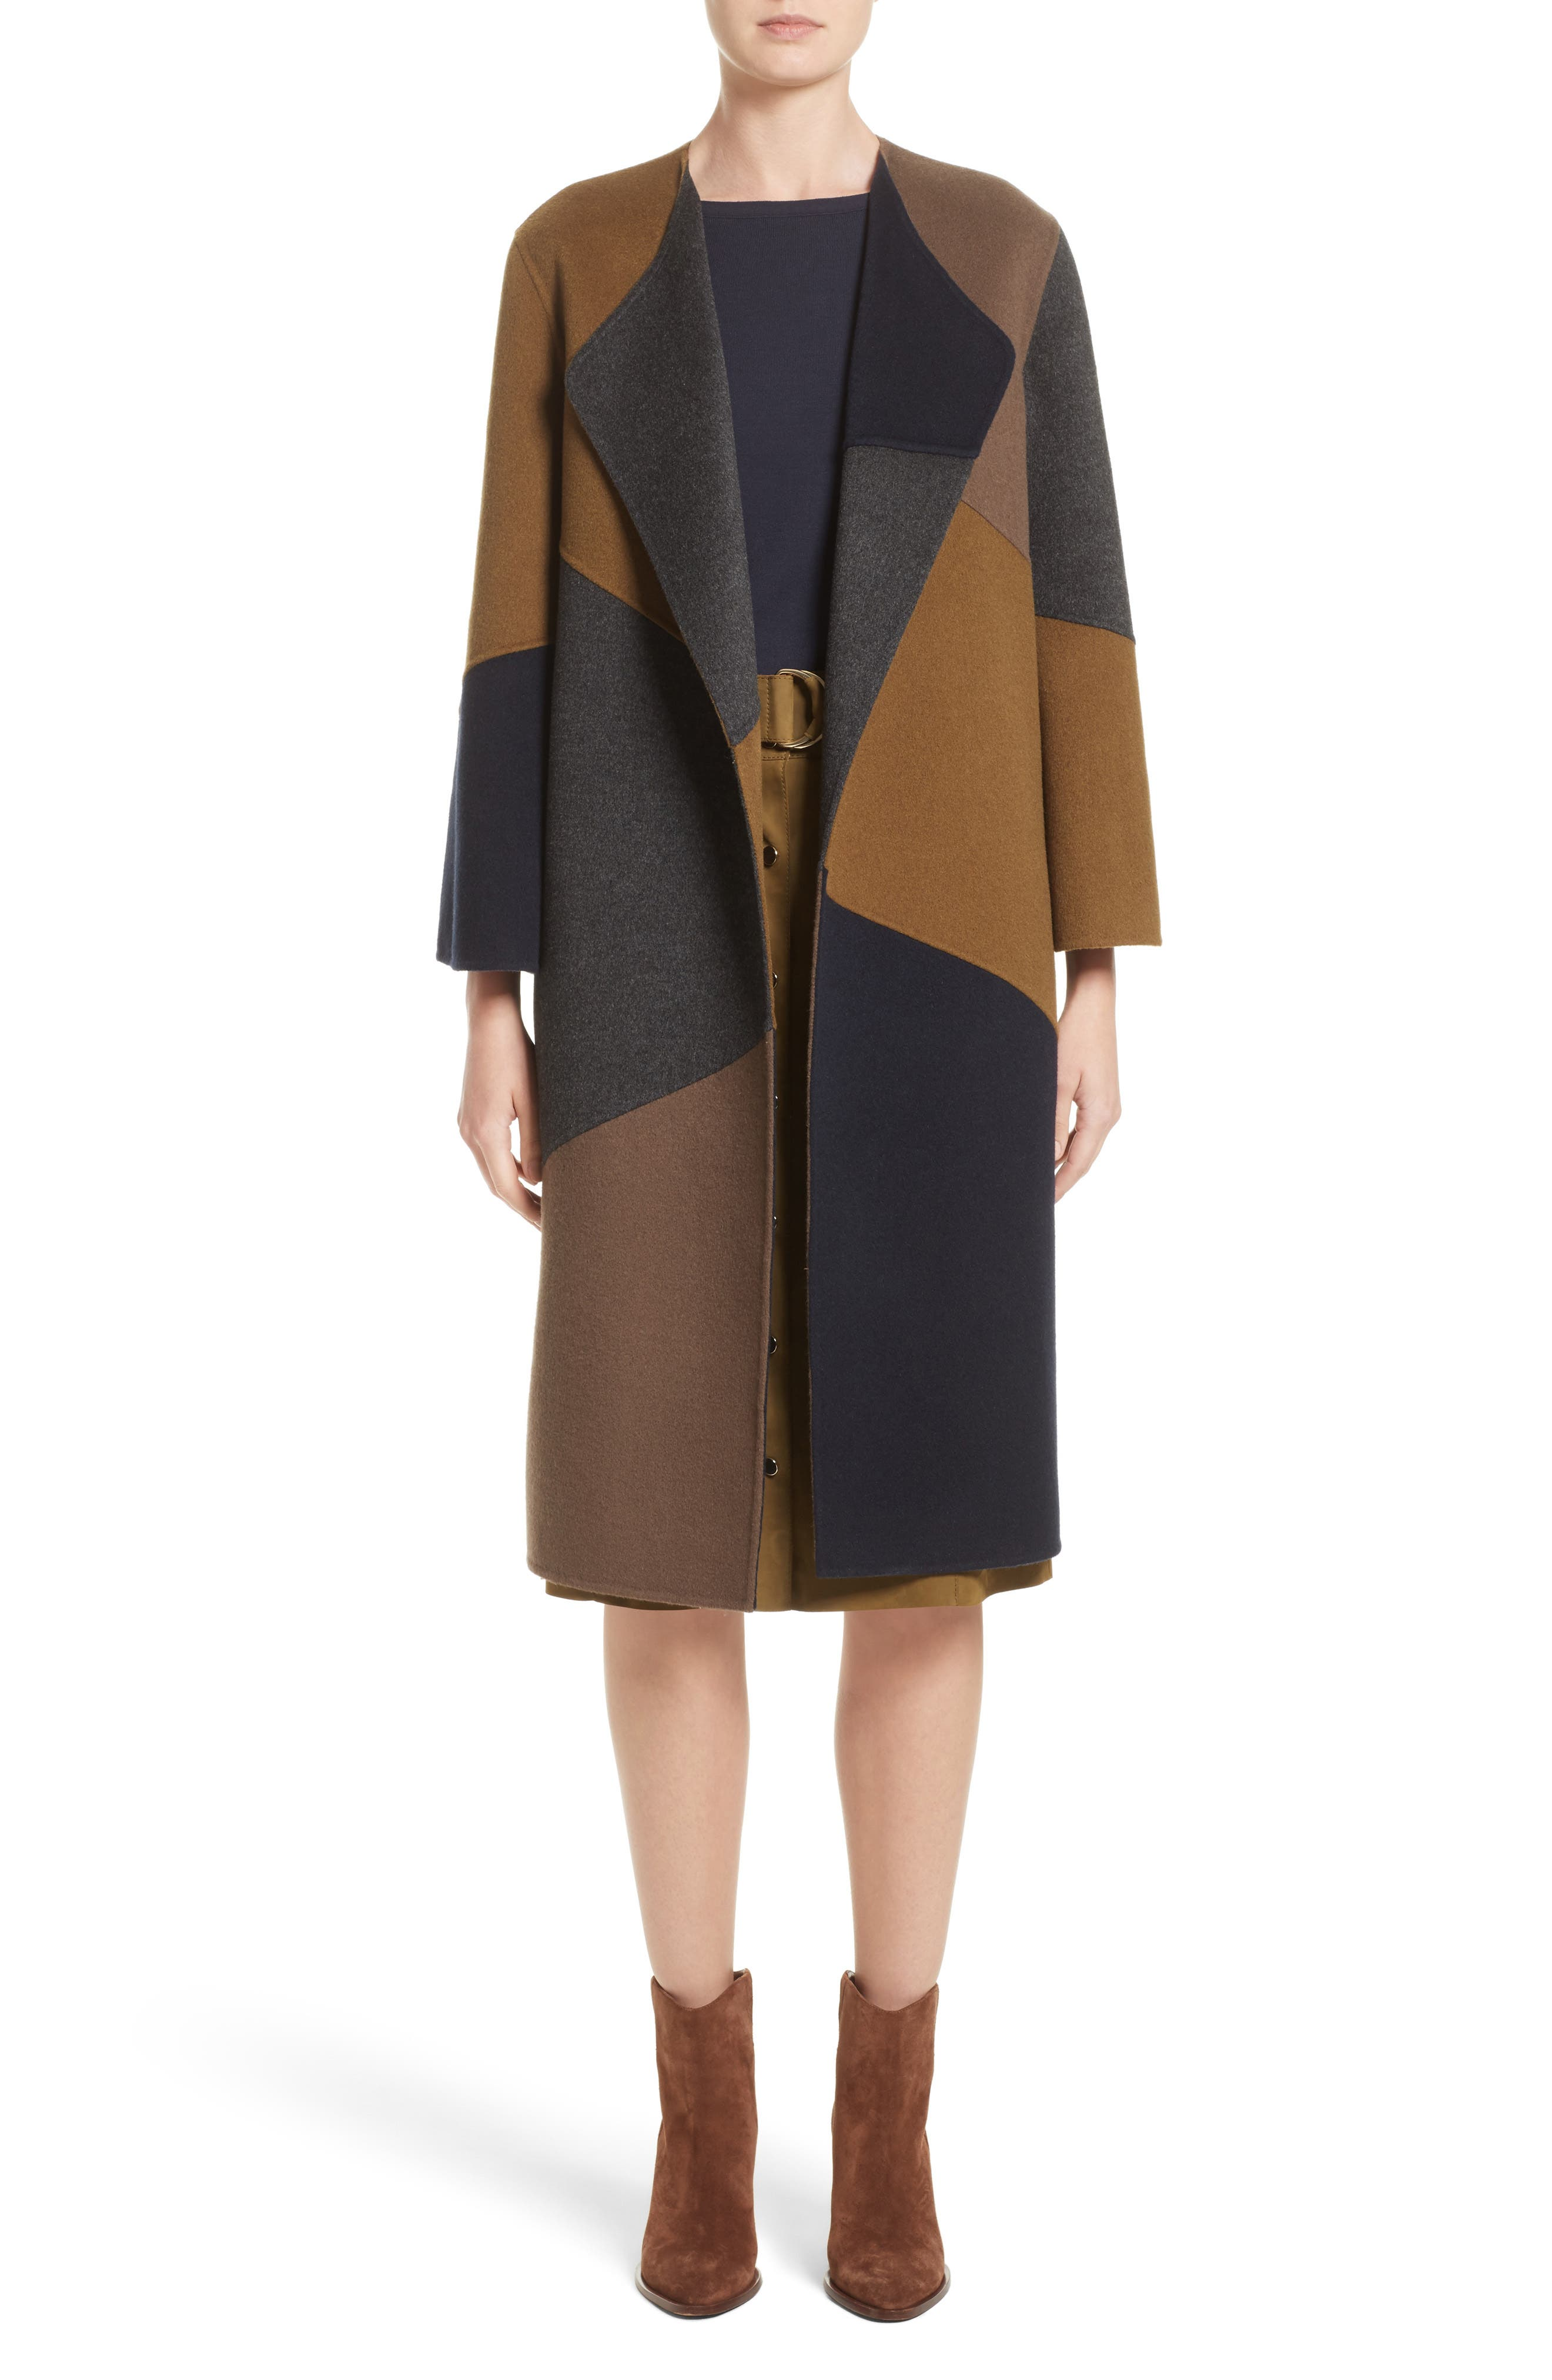 Alternate Image 1 Selected - Lafayette 148 New York Belissa Double Face Reversible Coat